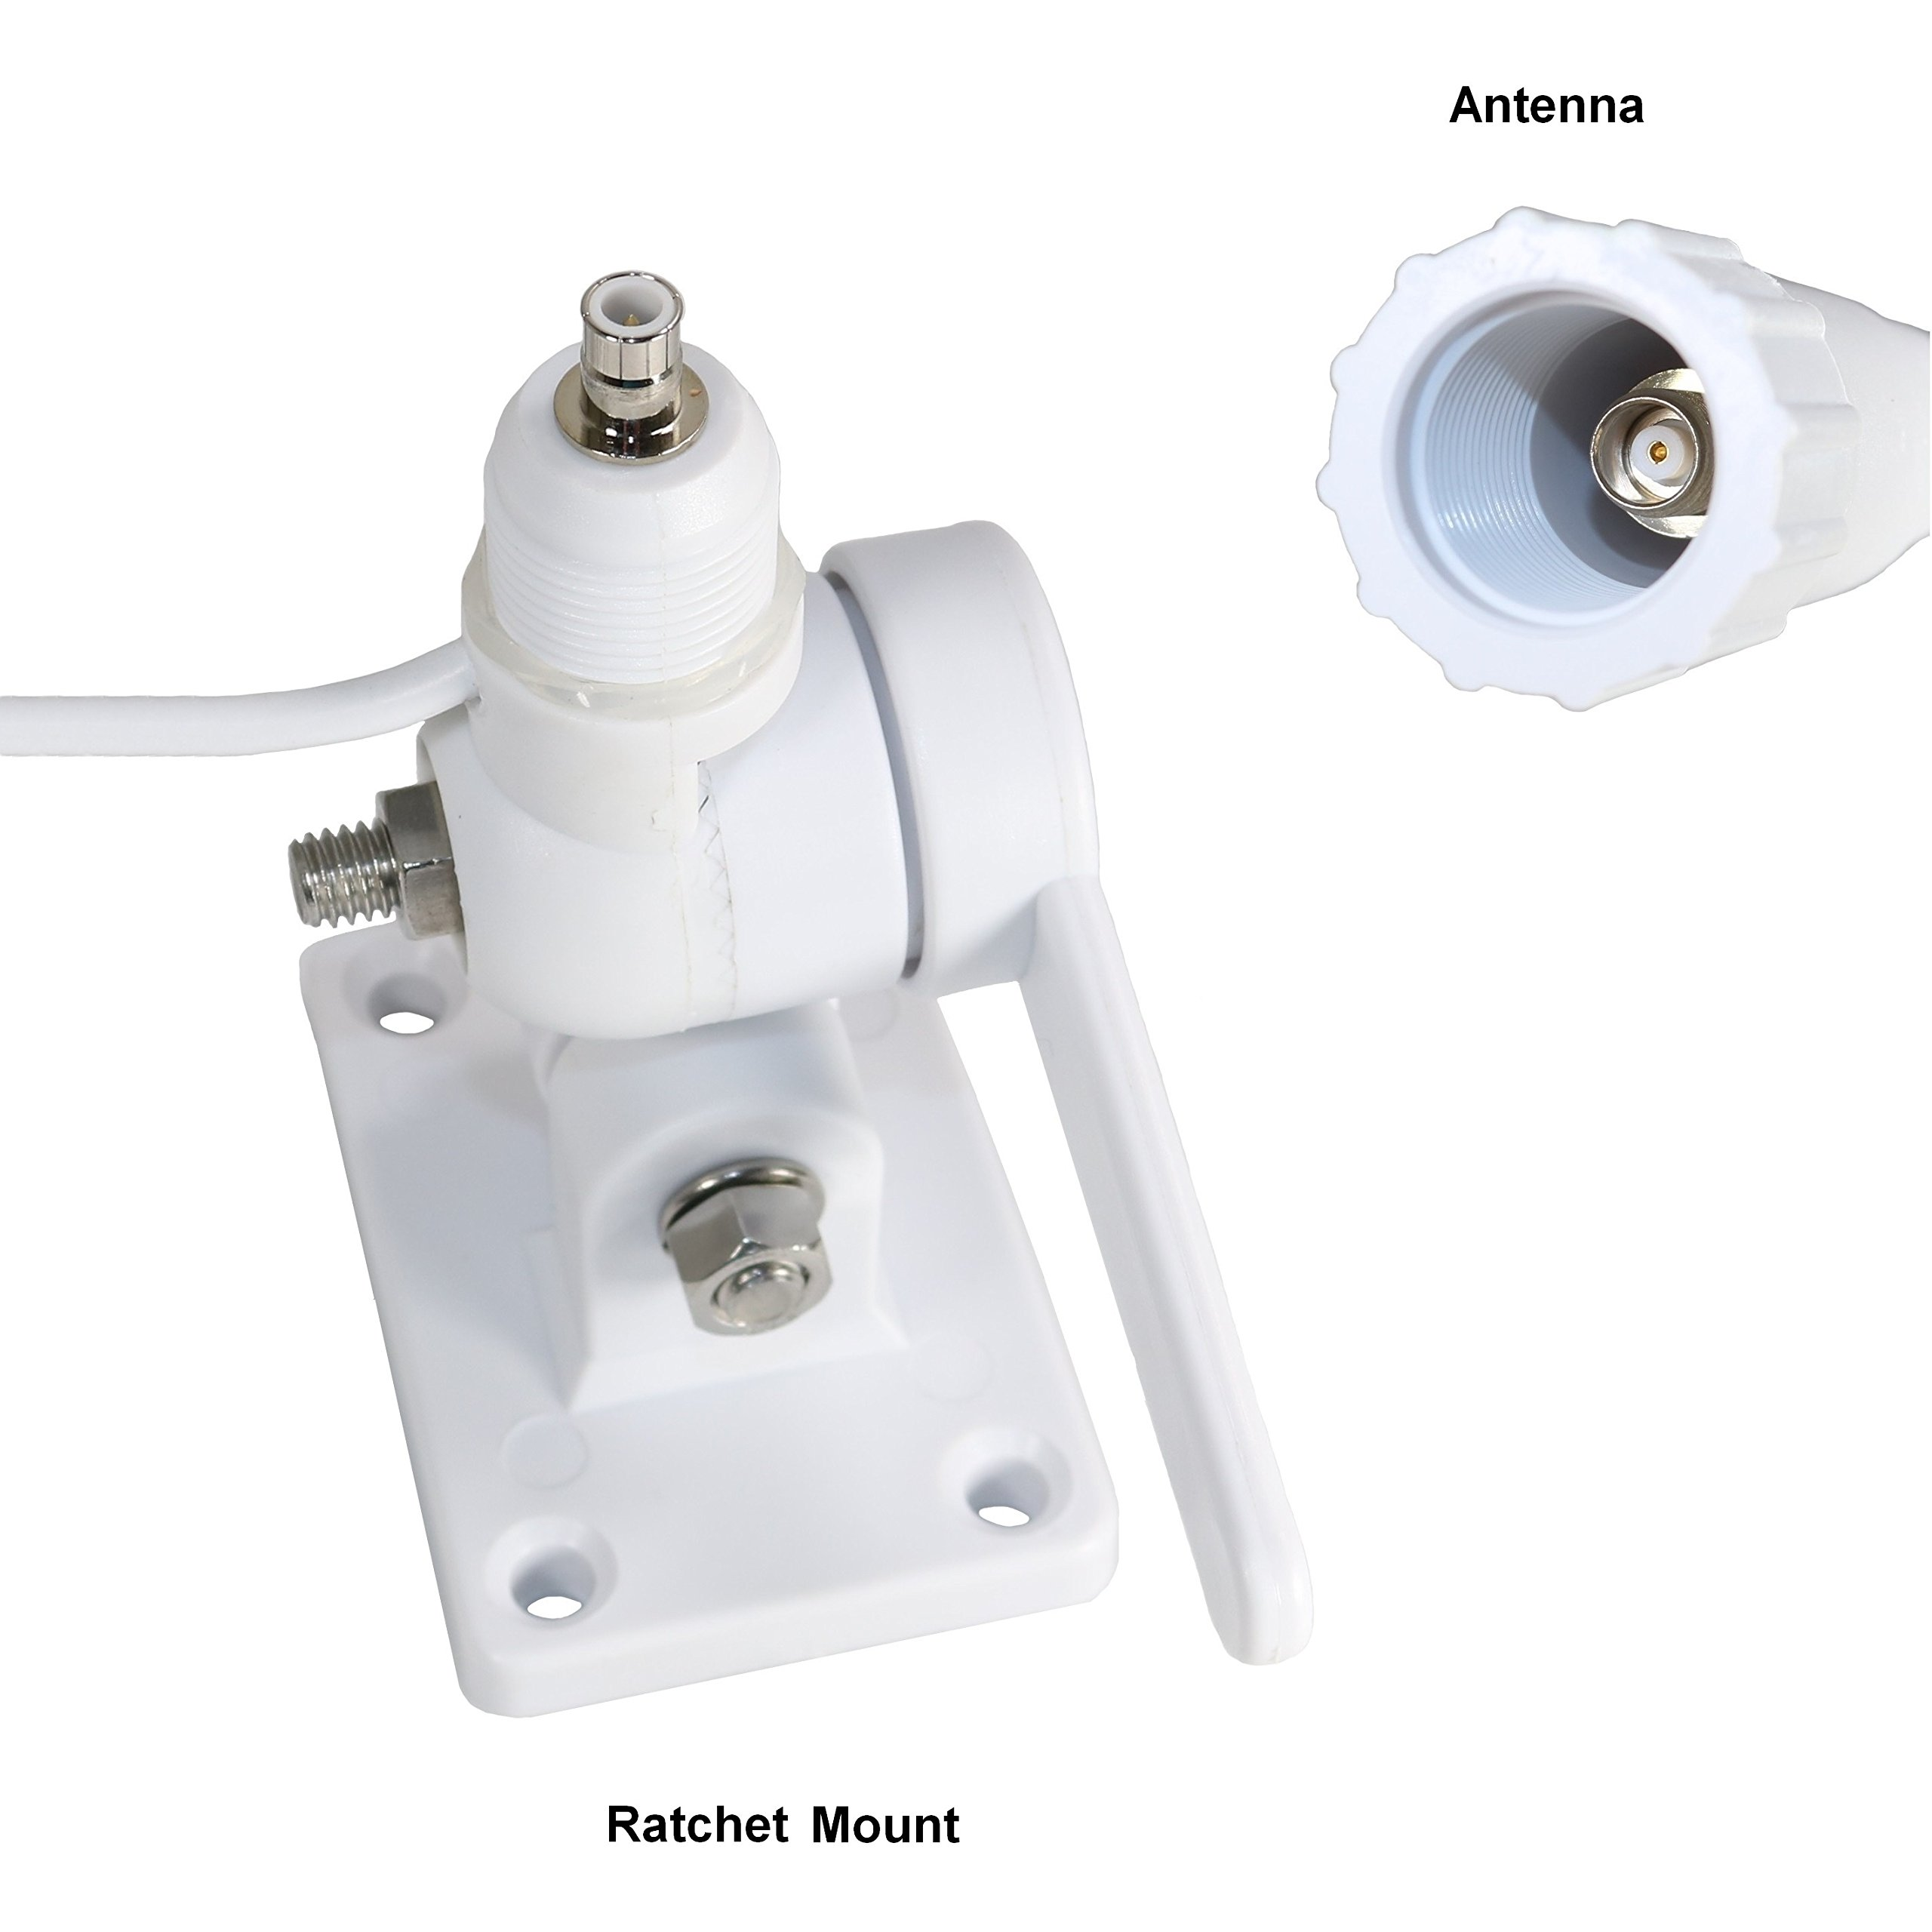 TRAM(R) 1614 46'' VHF 3 Dbd Gain Marine Antenna with Cable Built-in to Ratchet Mount, Silver by TRAM(R) (Image #4)